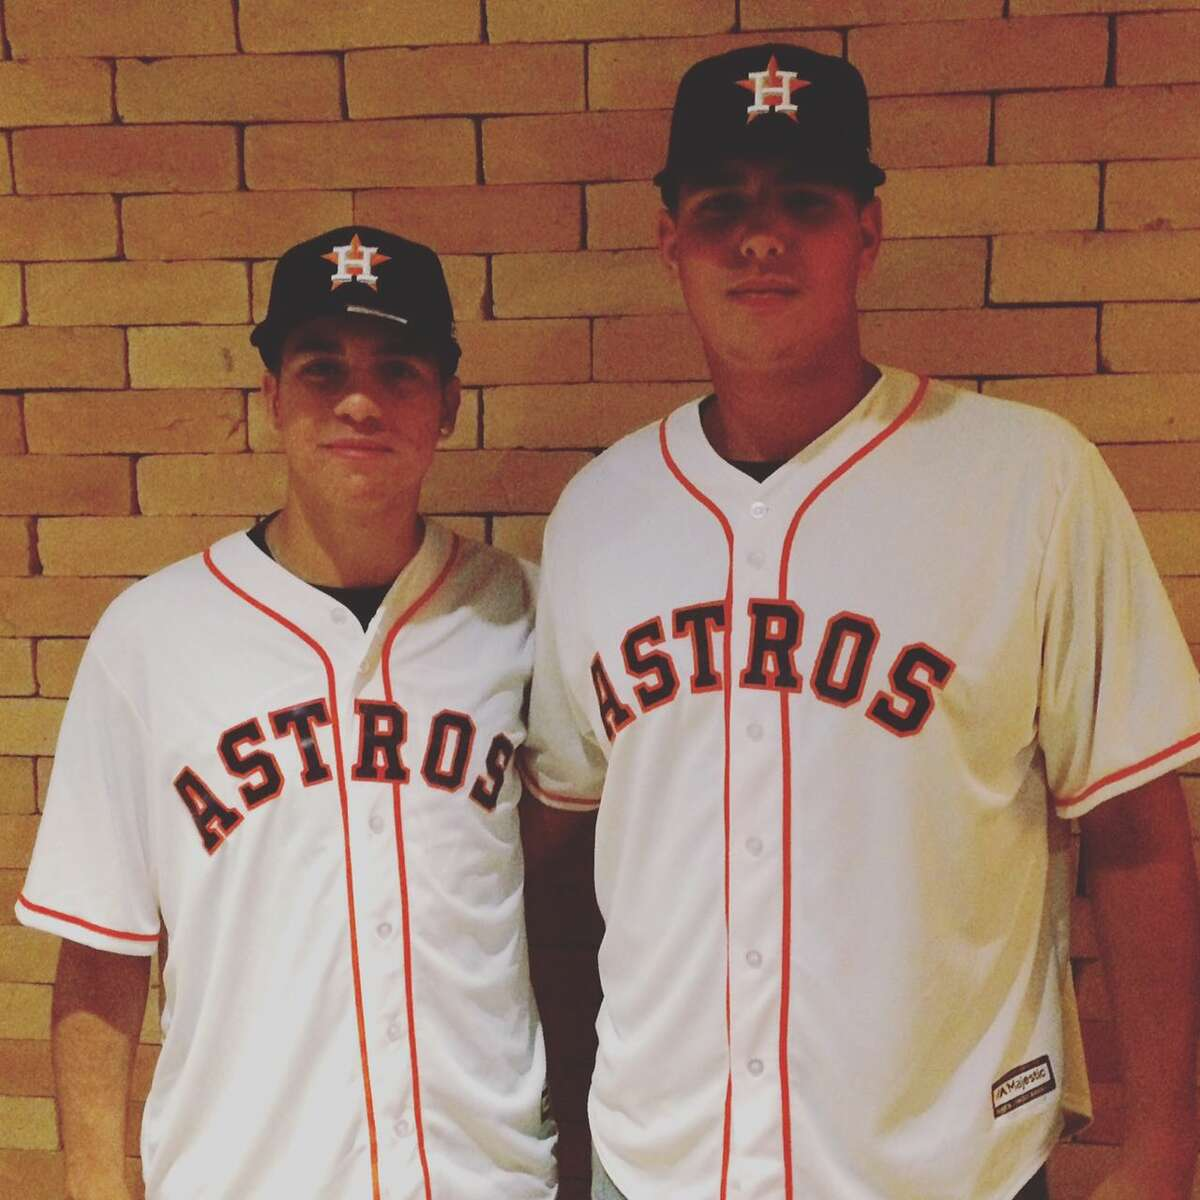 The Astros signed a couple Brazilians - Victor Mascai (left) and Heitor Tokar - on Monday.